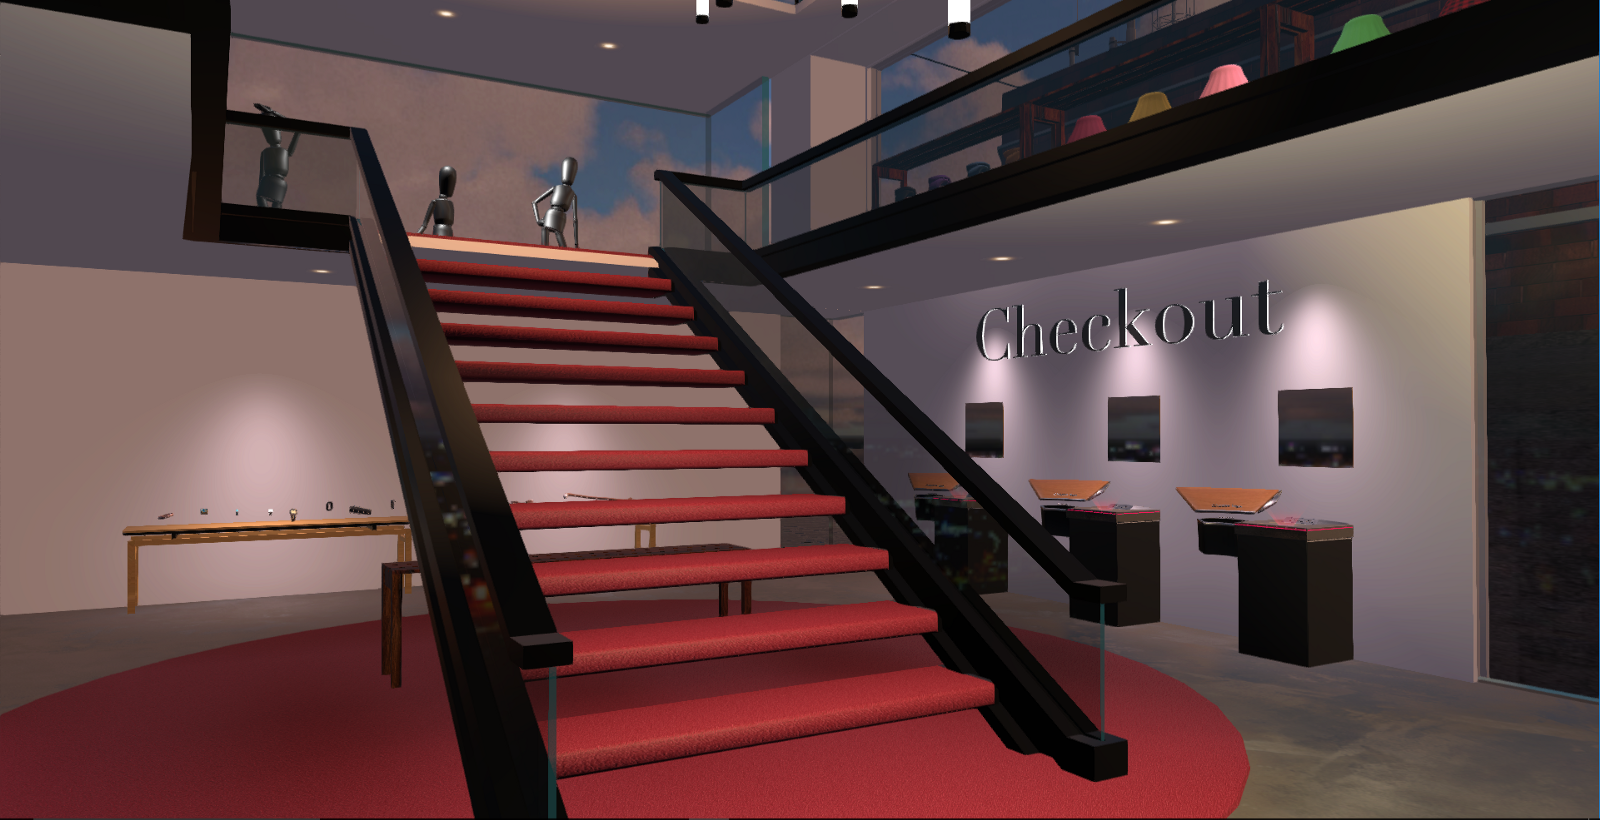 Wearable watches and skirts line the edges of the A&J store with checkout stands along the wall in High Fidelity VR